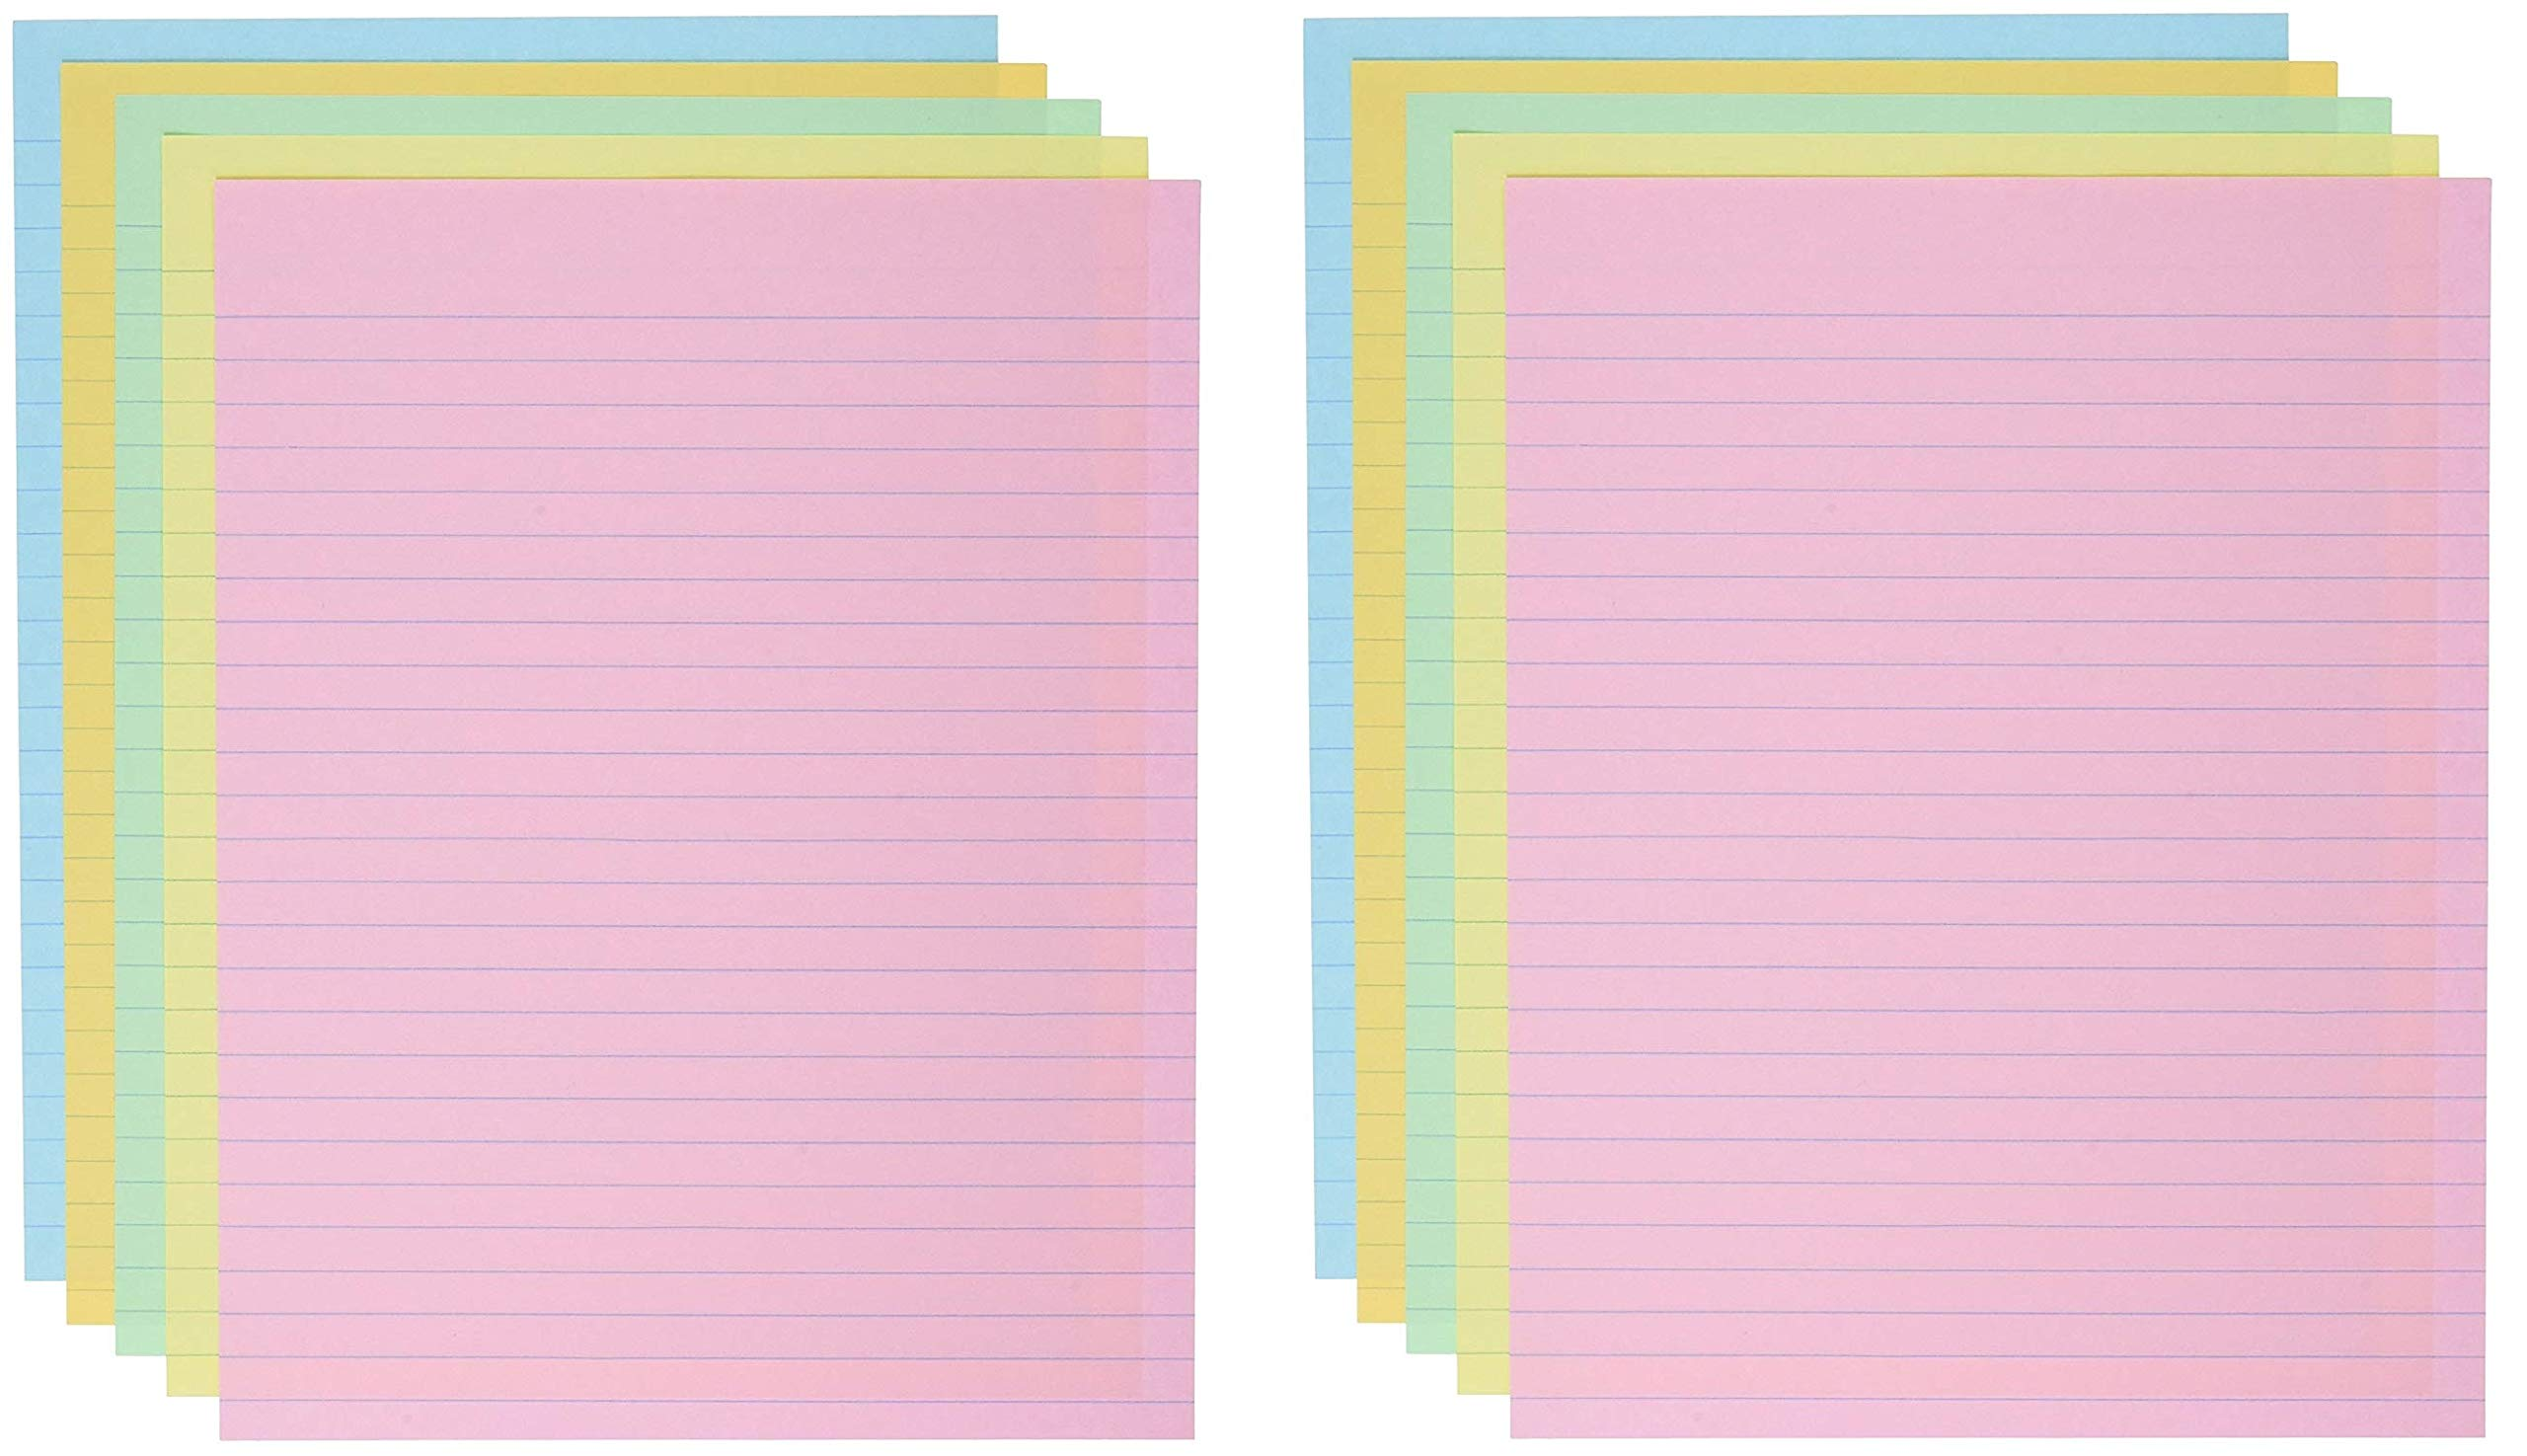 School Smart Ruled Exhibit Paper, 8-1/2 x 11 Inches, Assorted Colors, (2 X Pack of 500) by School Smart (Image #1)